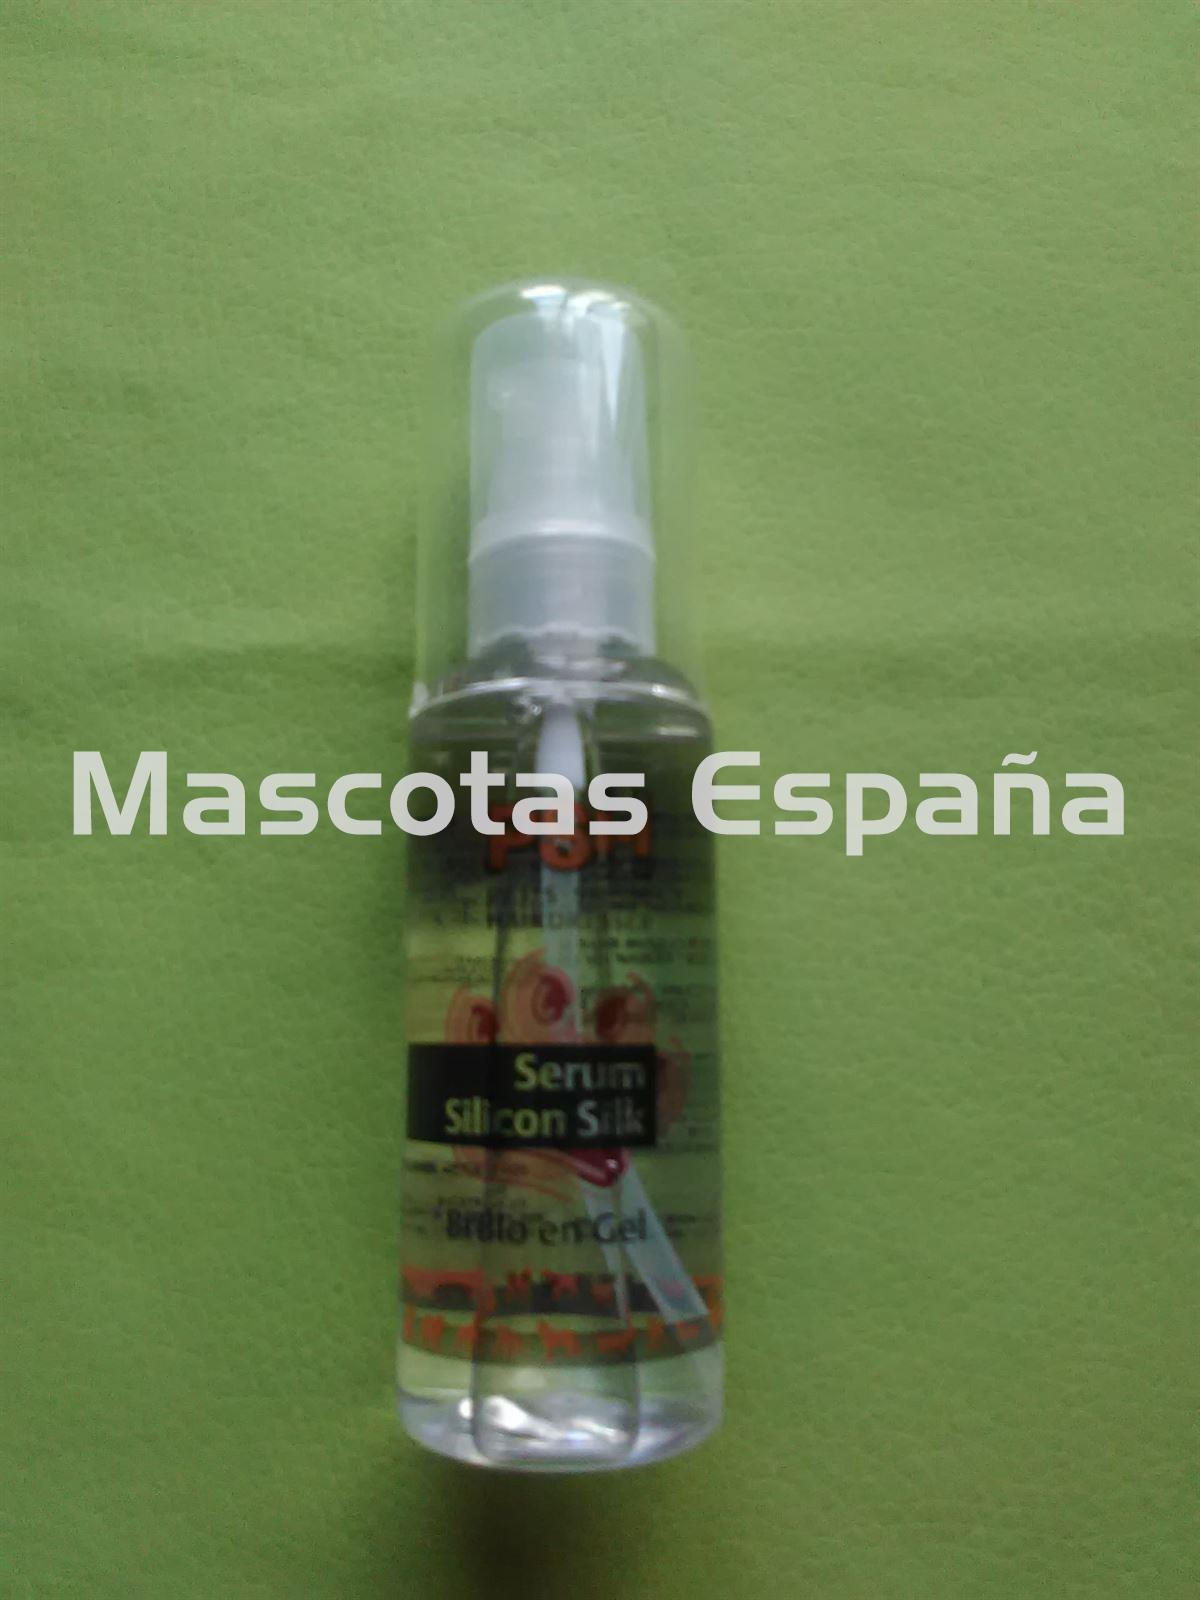 PSH Serum Silicon Silk (Brillo en Gel) 90ml - Imagen 1